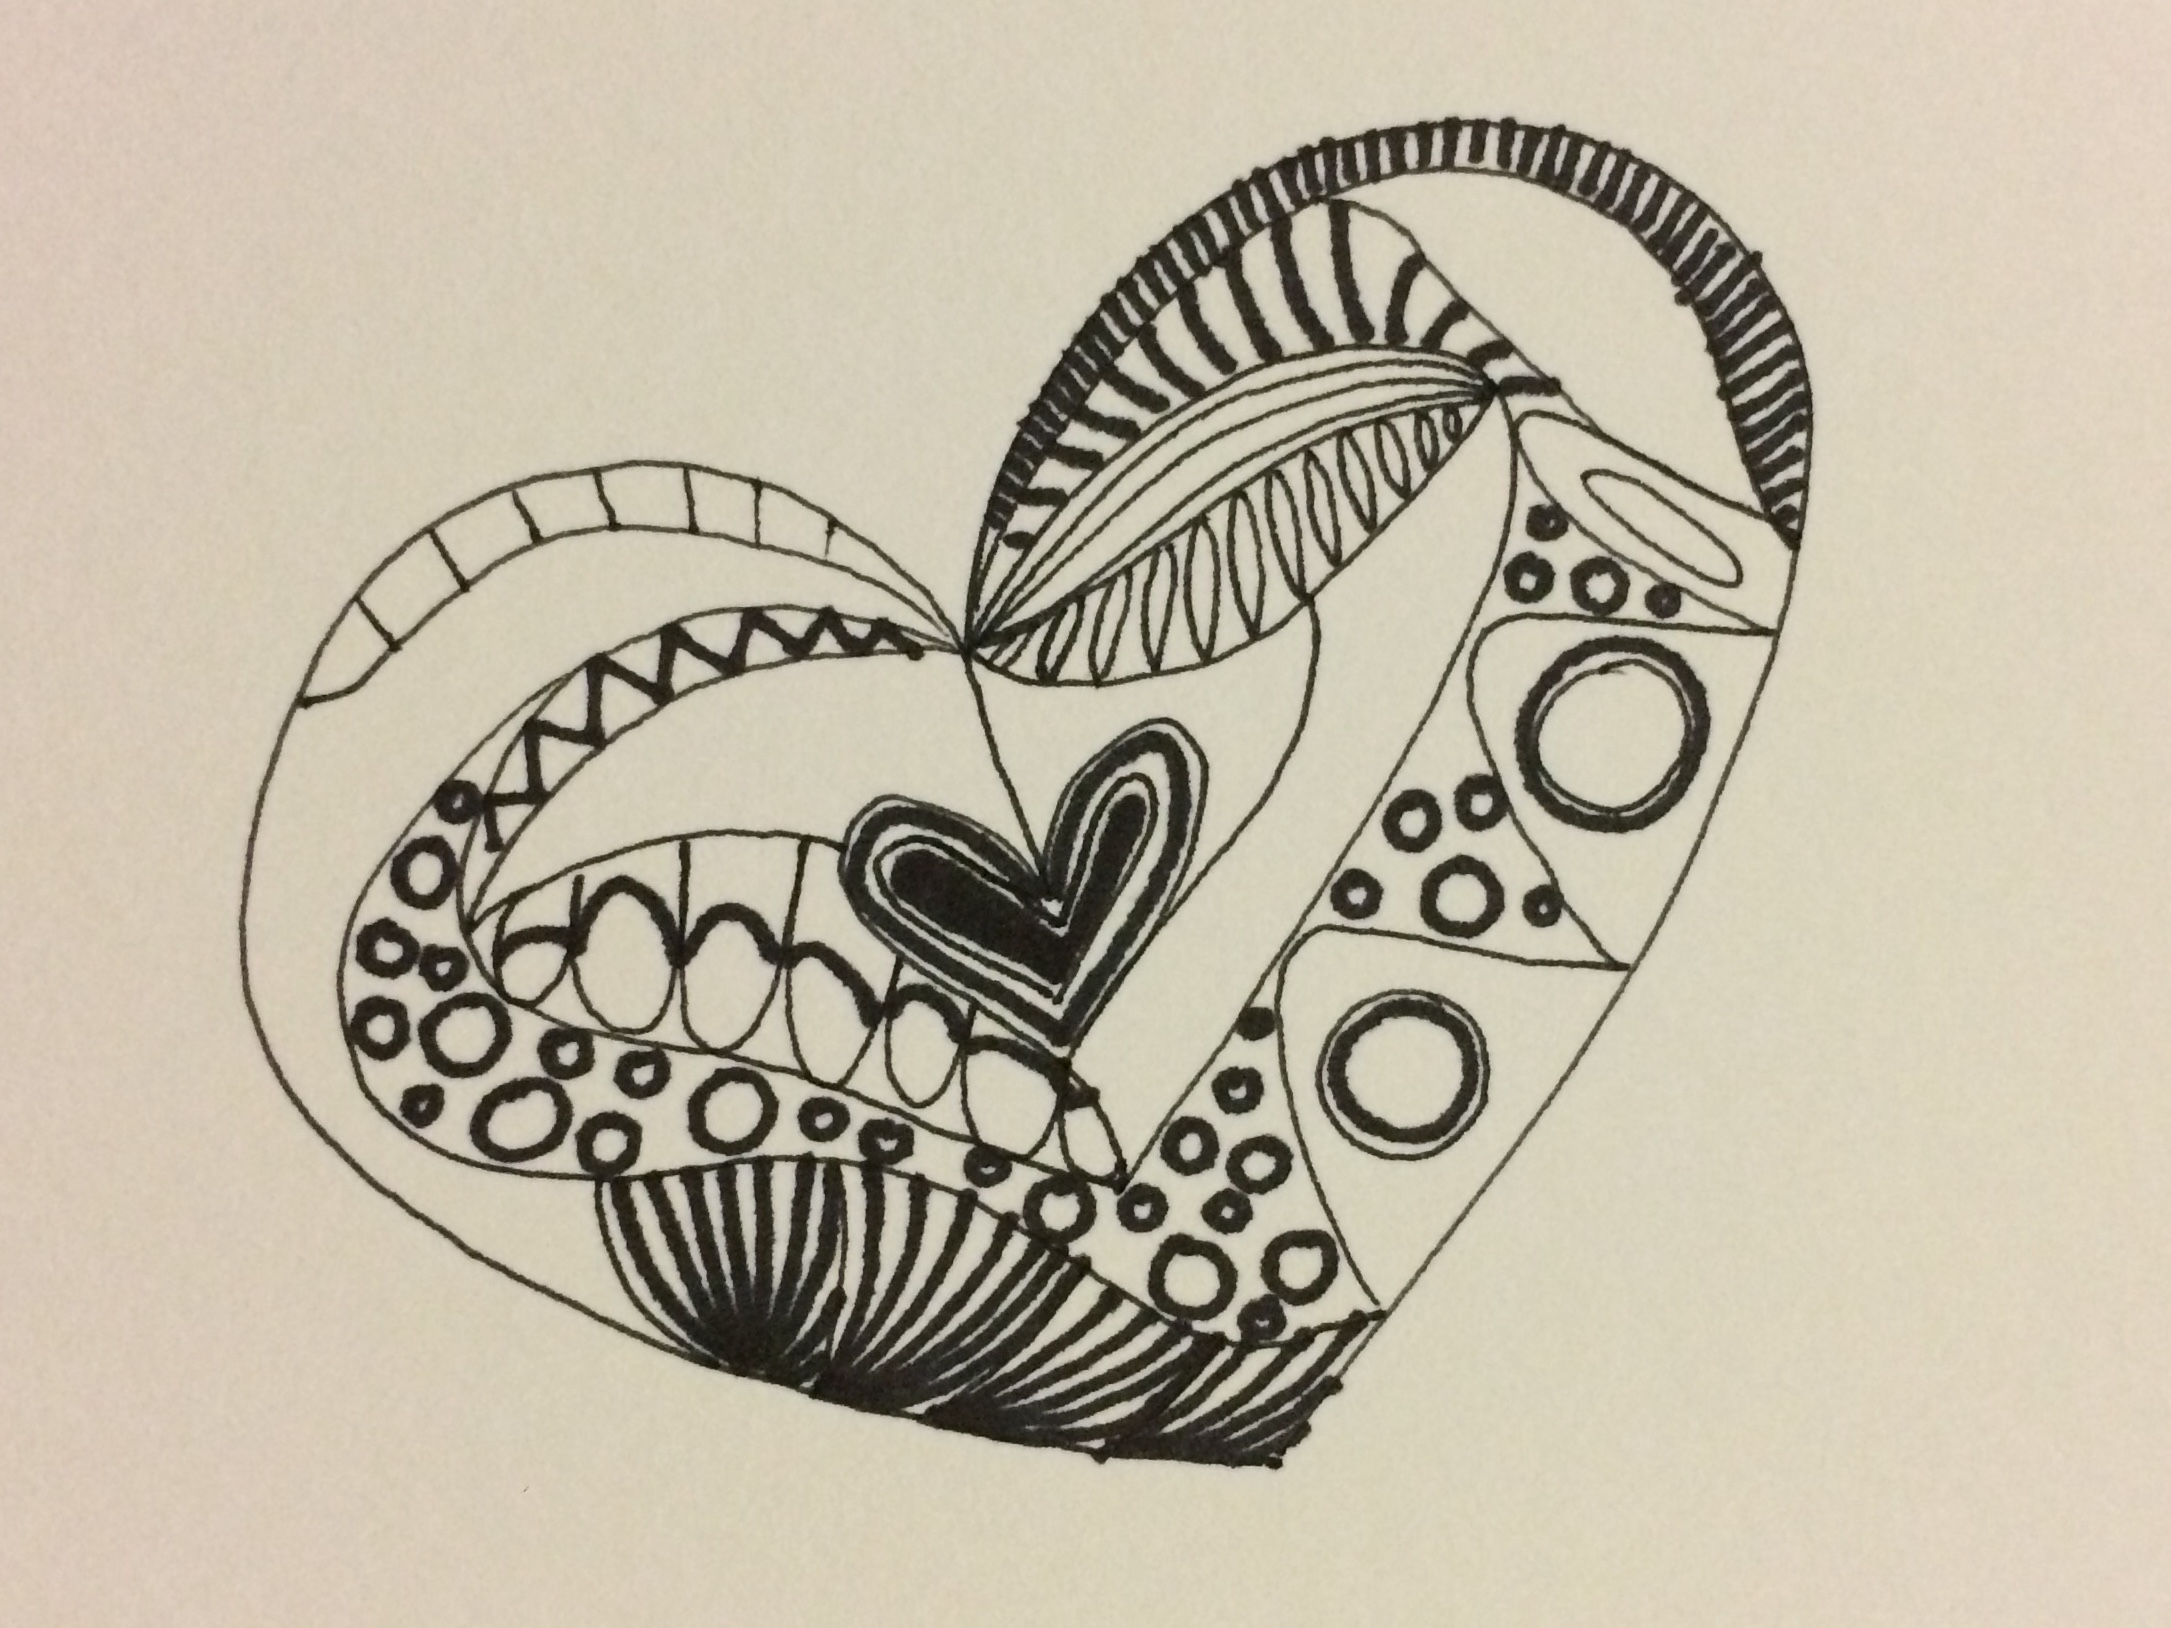 initial sketch, Zentangle based